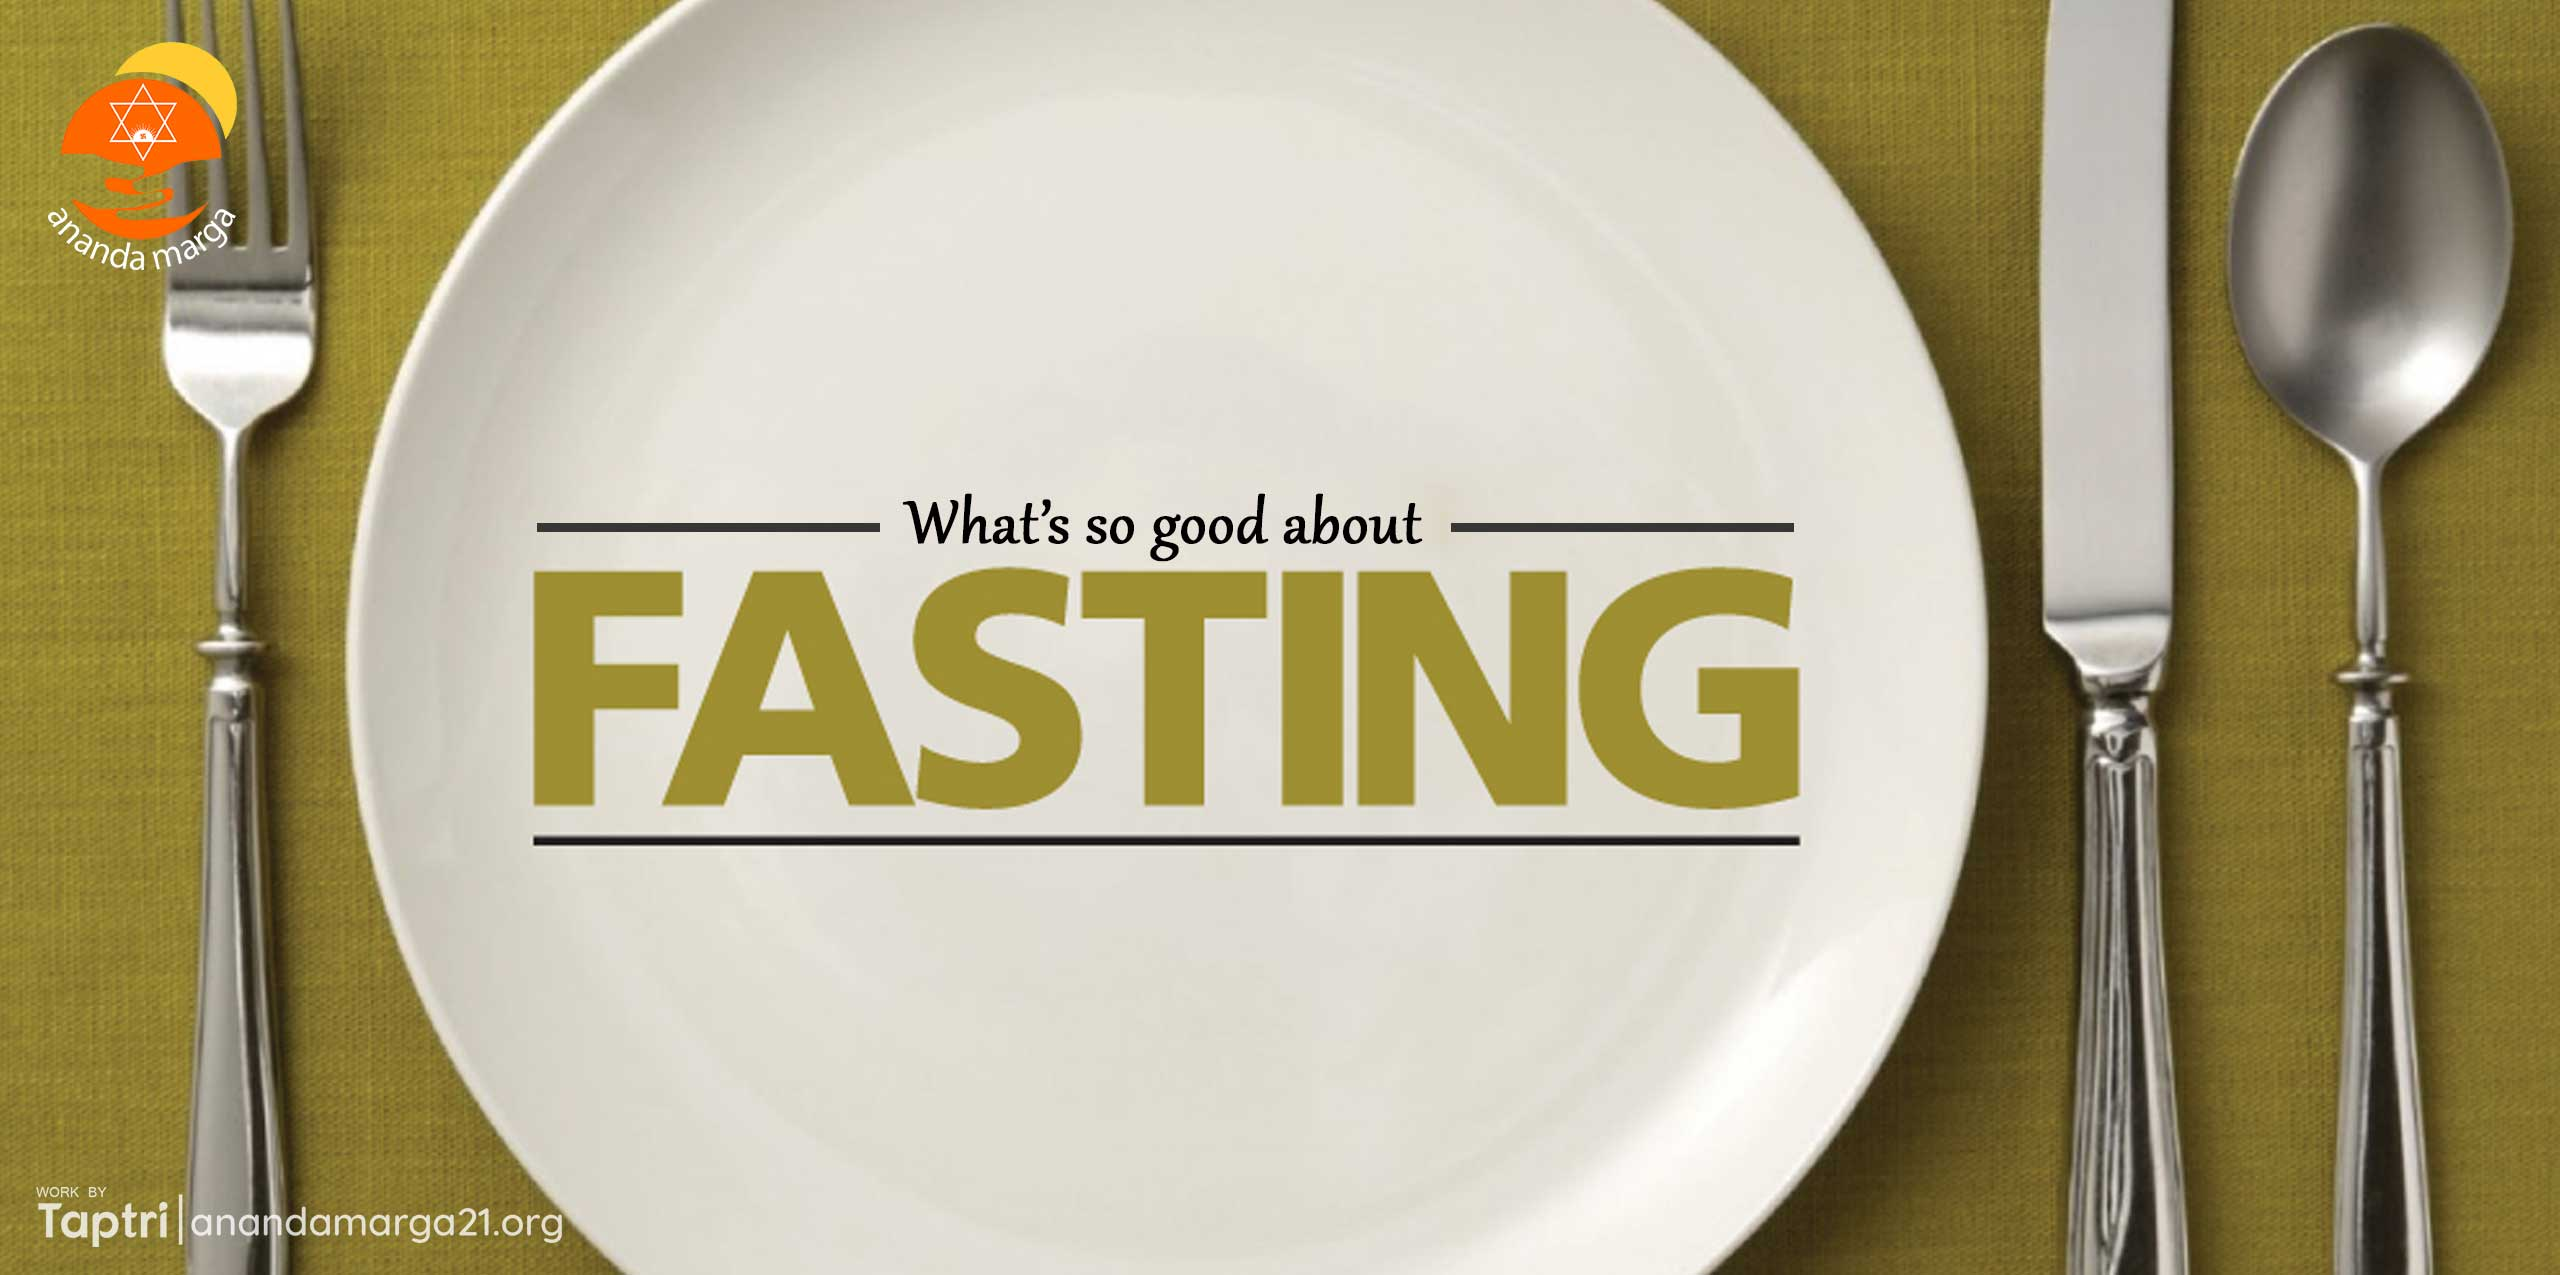 Whats-so-good-about-fasting-Ananda Marga